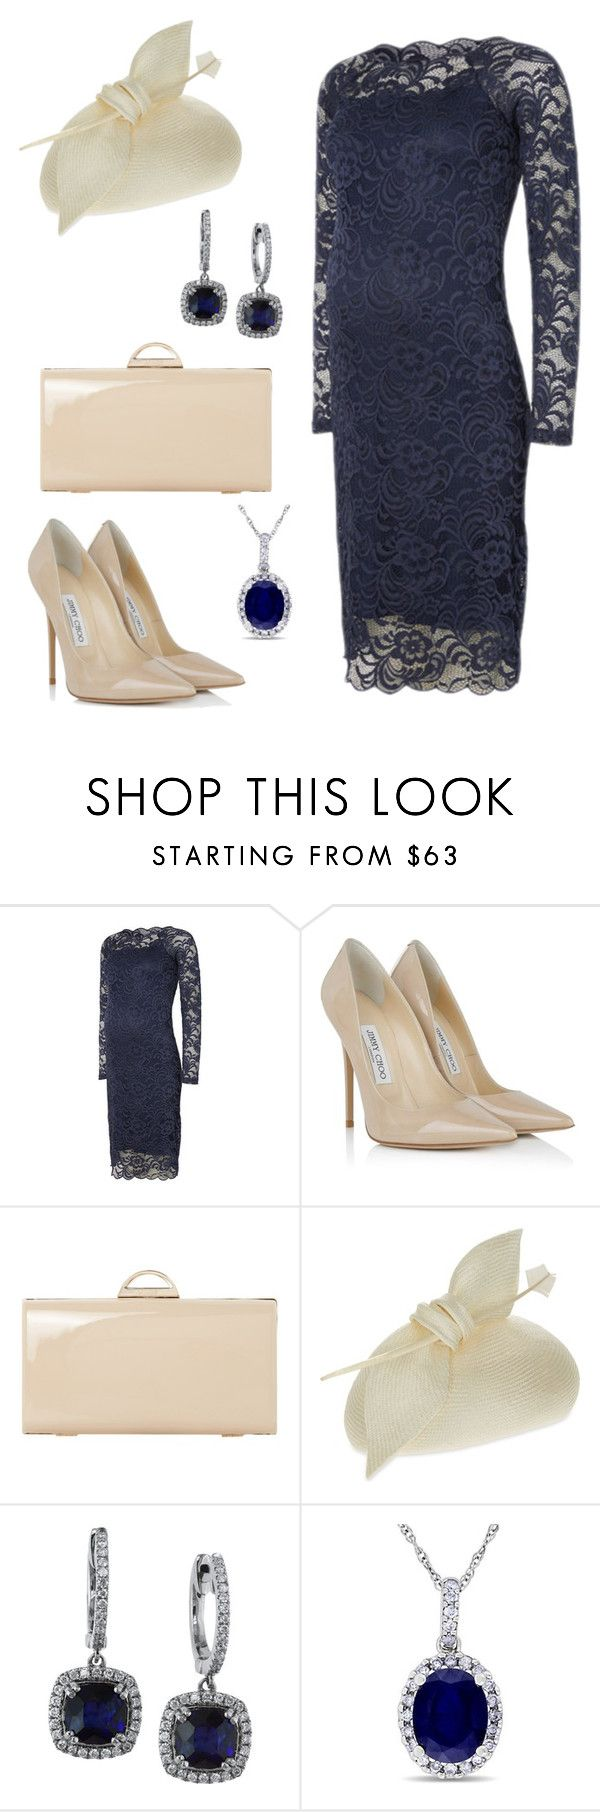 """Maternity wedding guest"" by laurenharty ❤ liked on Polyvore featuring Mama.licious, Jimmy Choo, Dune, Juliette Botterill Millinery, Effy Jewelry and Allurez"